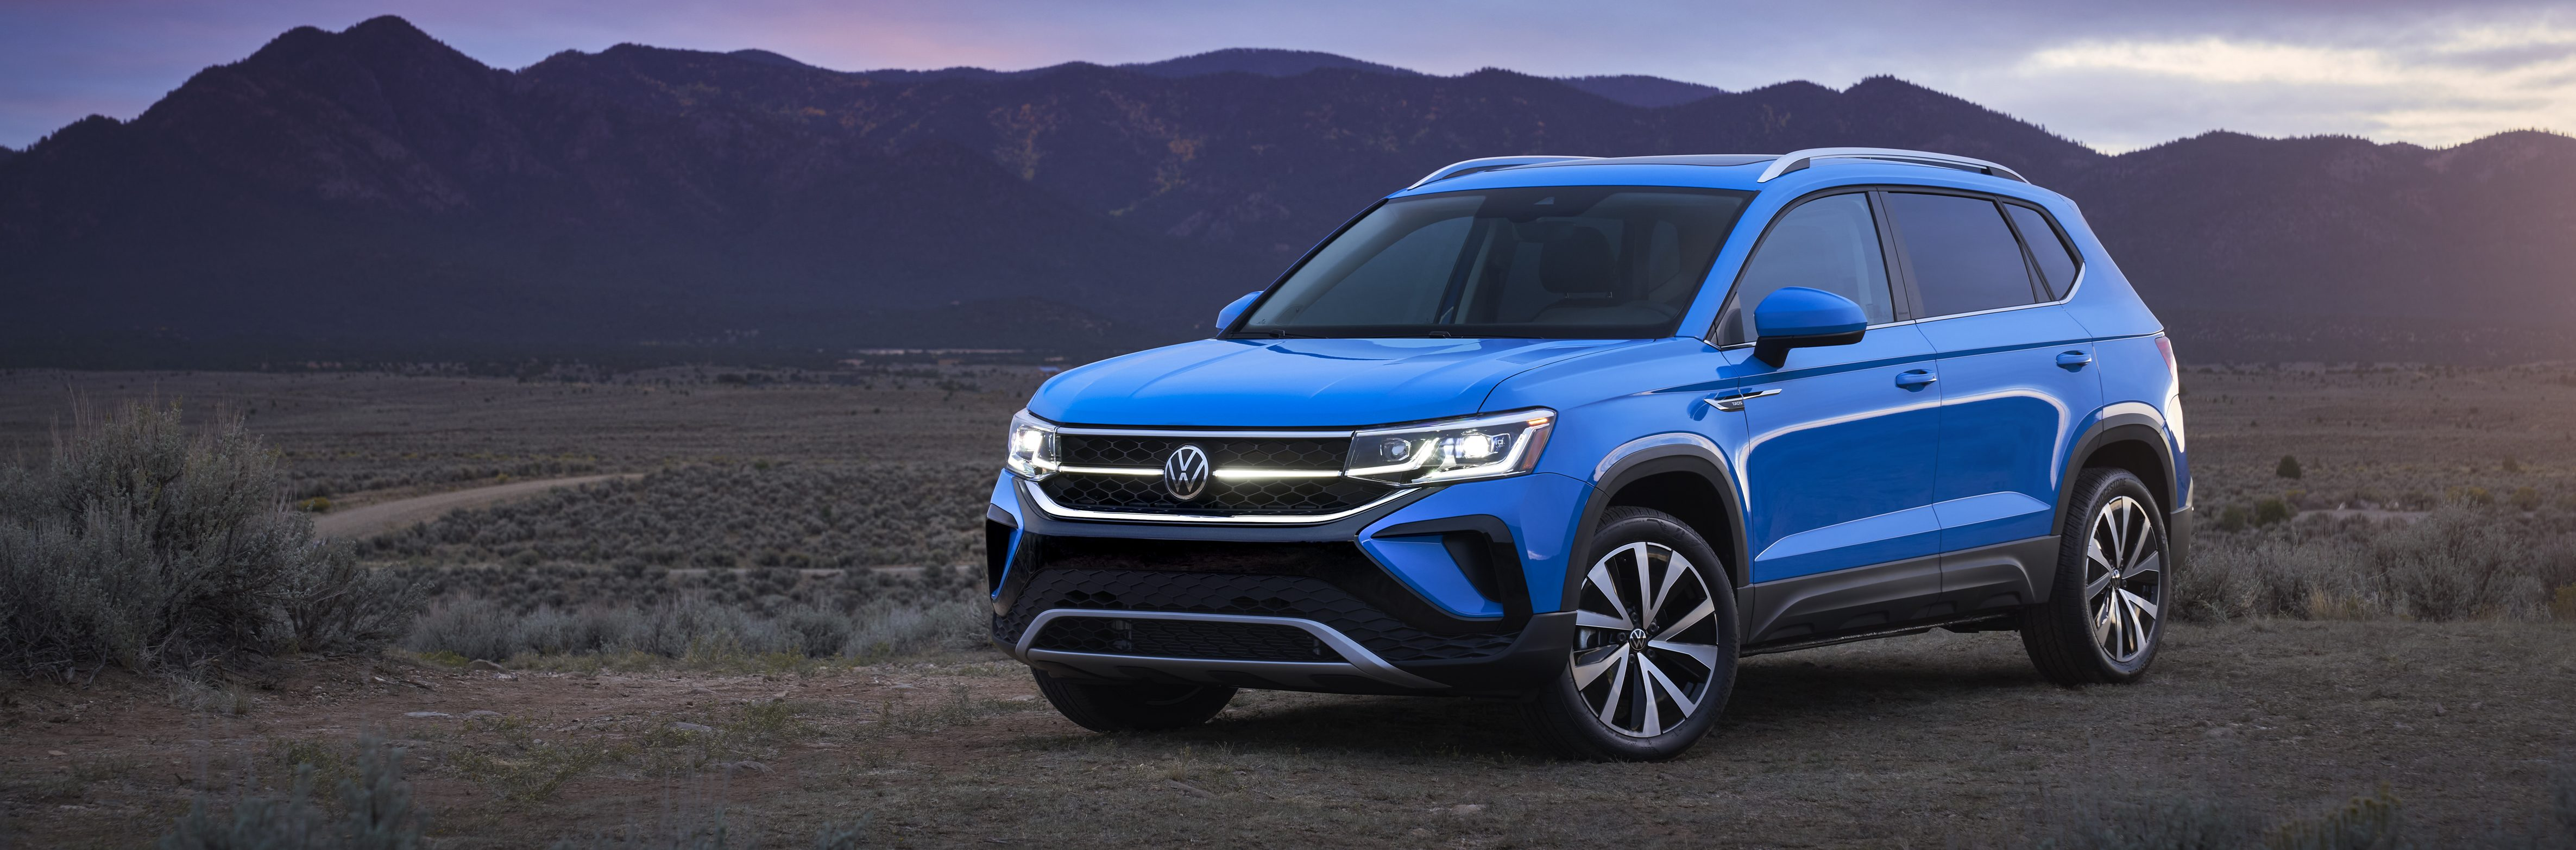 Blue 2022 Volkswagen Taos SUV In Front Of Mountain Background